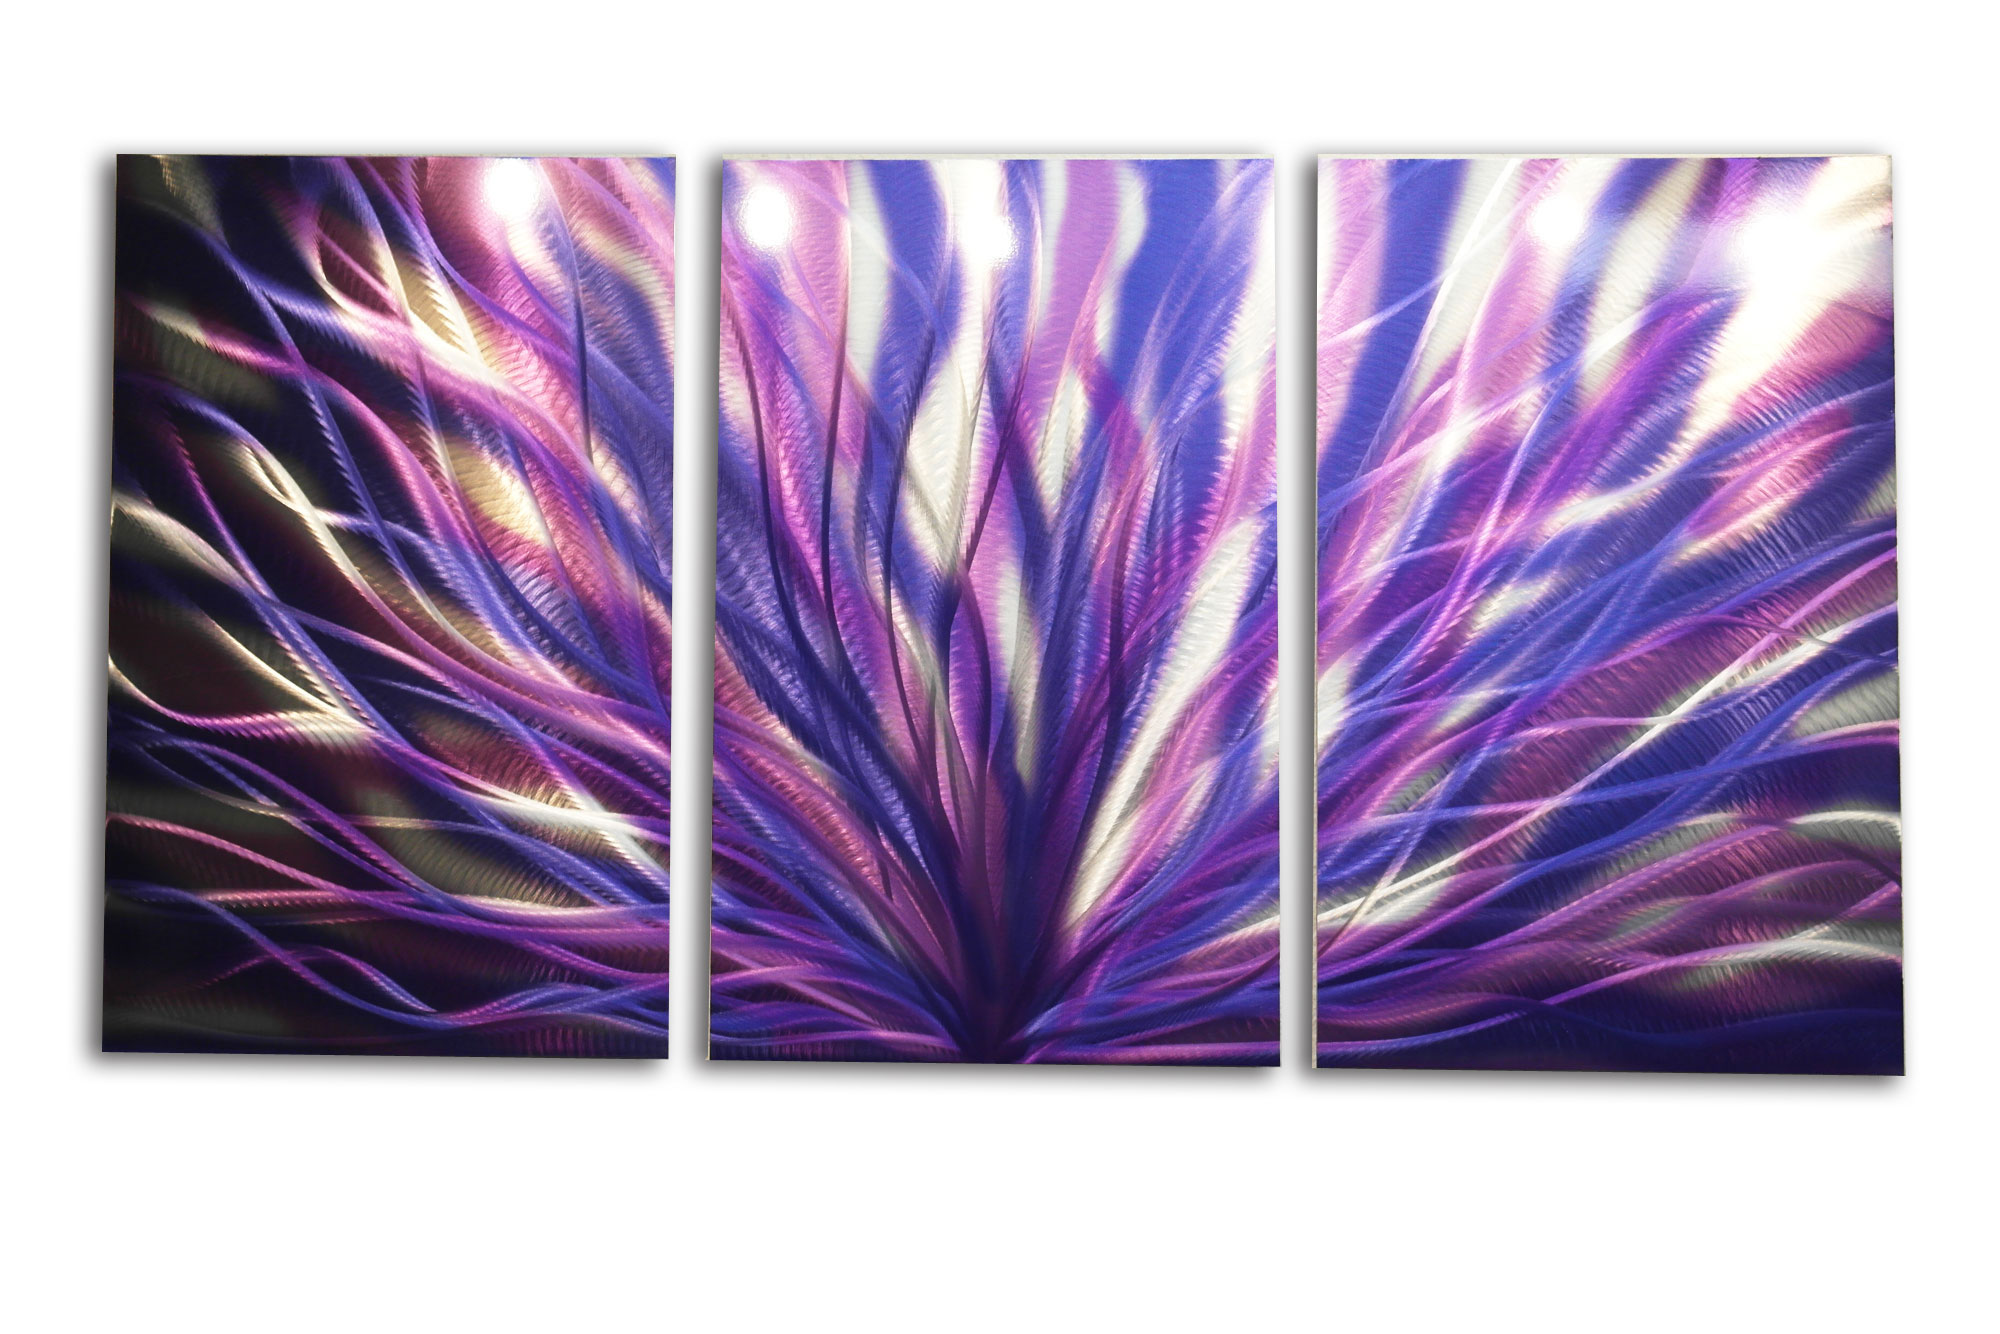 Radiance Purple 47 - Metal Wall Art Abstract Sculpture Modern Decor- - Thumbnail ...  sc 1 st  Inspiring Art Gallery & Radiance Purple 47 - Metal Wall Art Abstract Sculpture Modern Decor ...